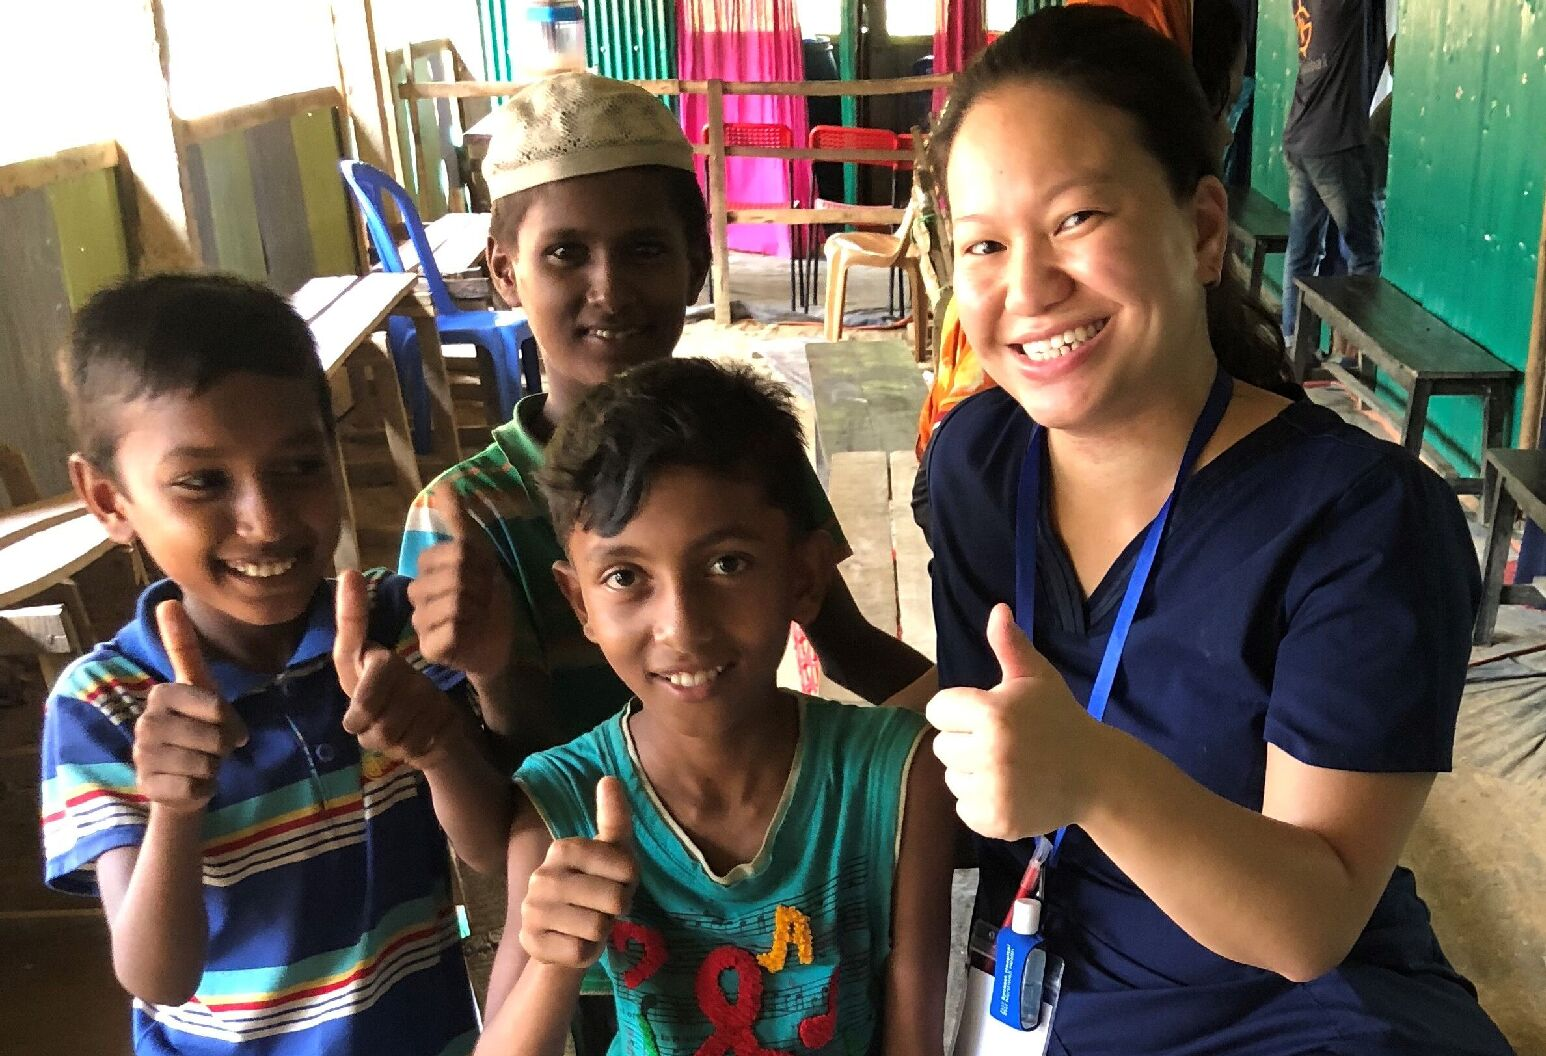 Nina posing with patients giving thumbs up